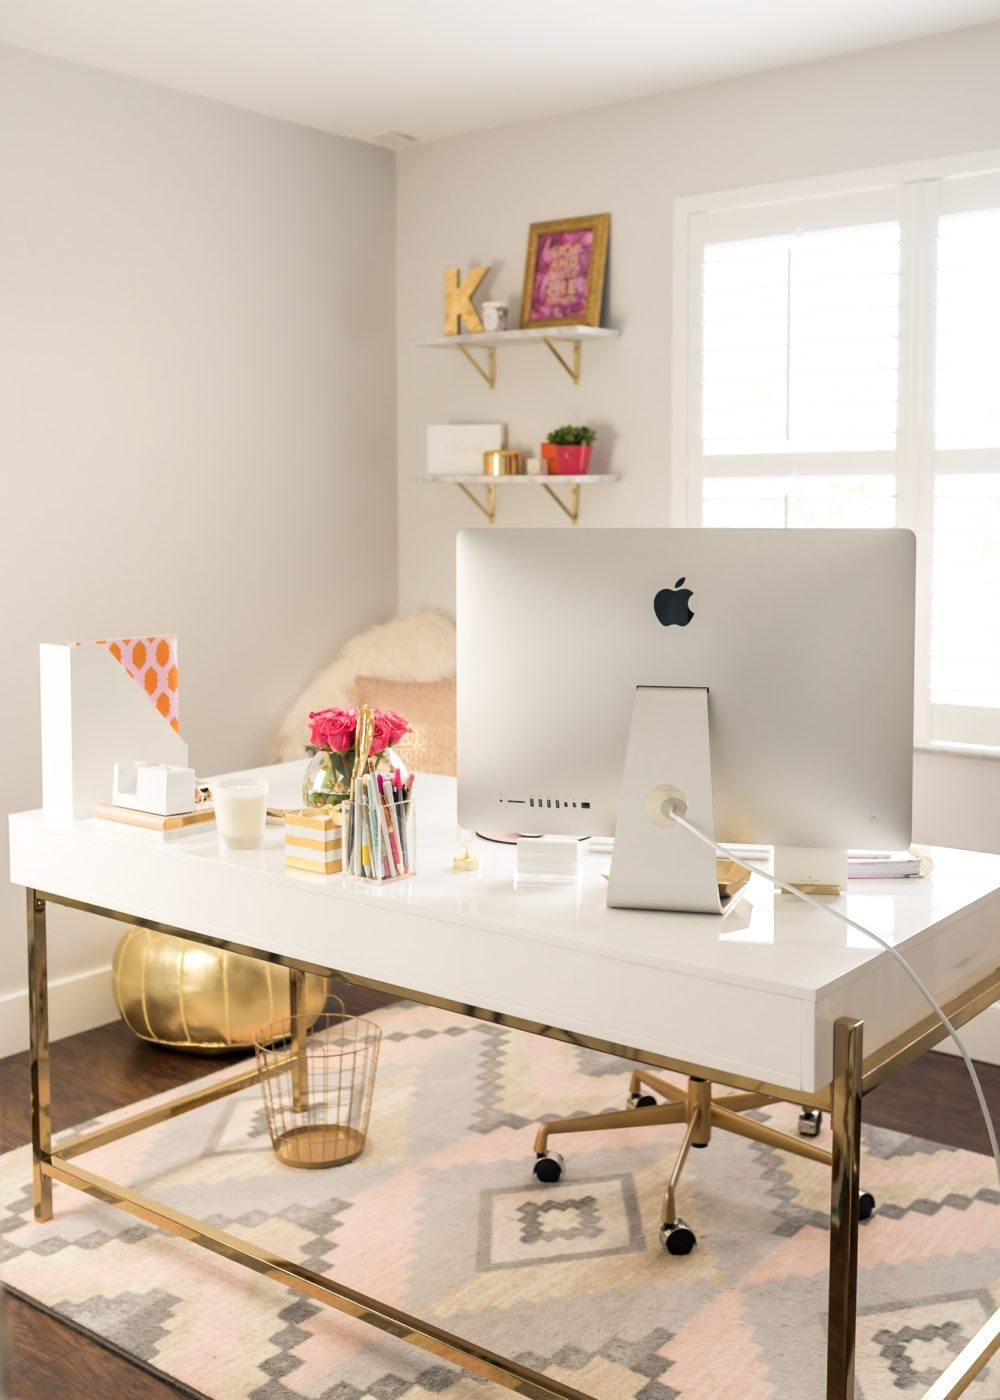 Chic Office Design In Pinterest Visit And Follow Homedesignideaseu For More Inspiring Images Decor Ideas Home Office Desks Chic Essentials Office Decor